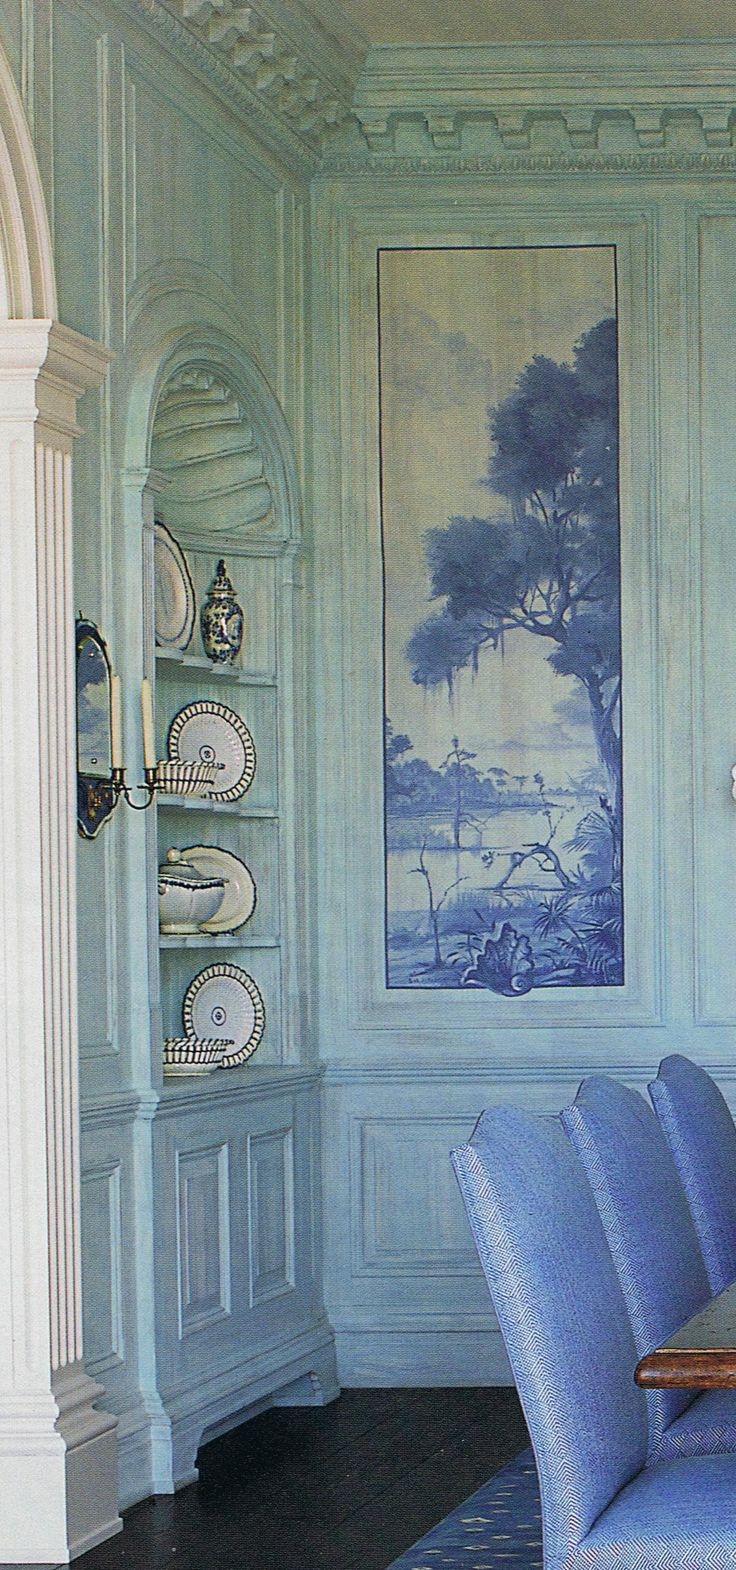 Home decorators collection revisited southern hospitality - Robin S Egg Blue Walls And Darker Blue Murals Love How The Upholstered Chairs Repeat The